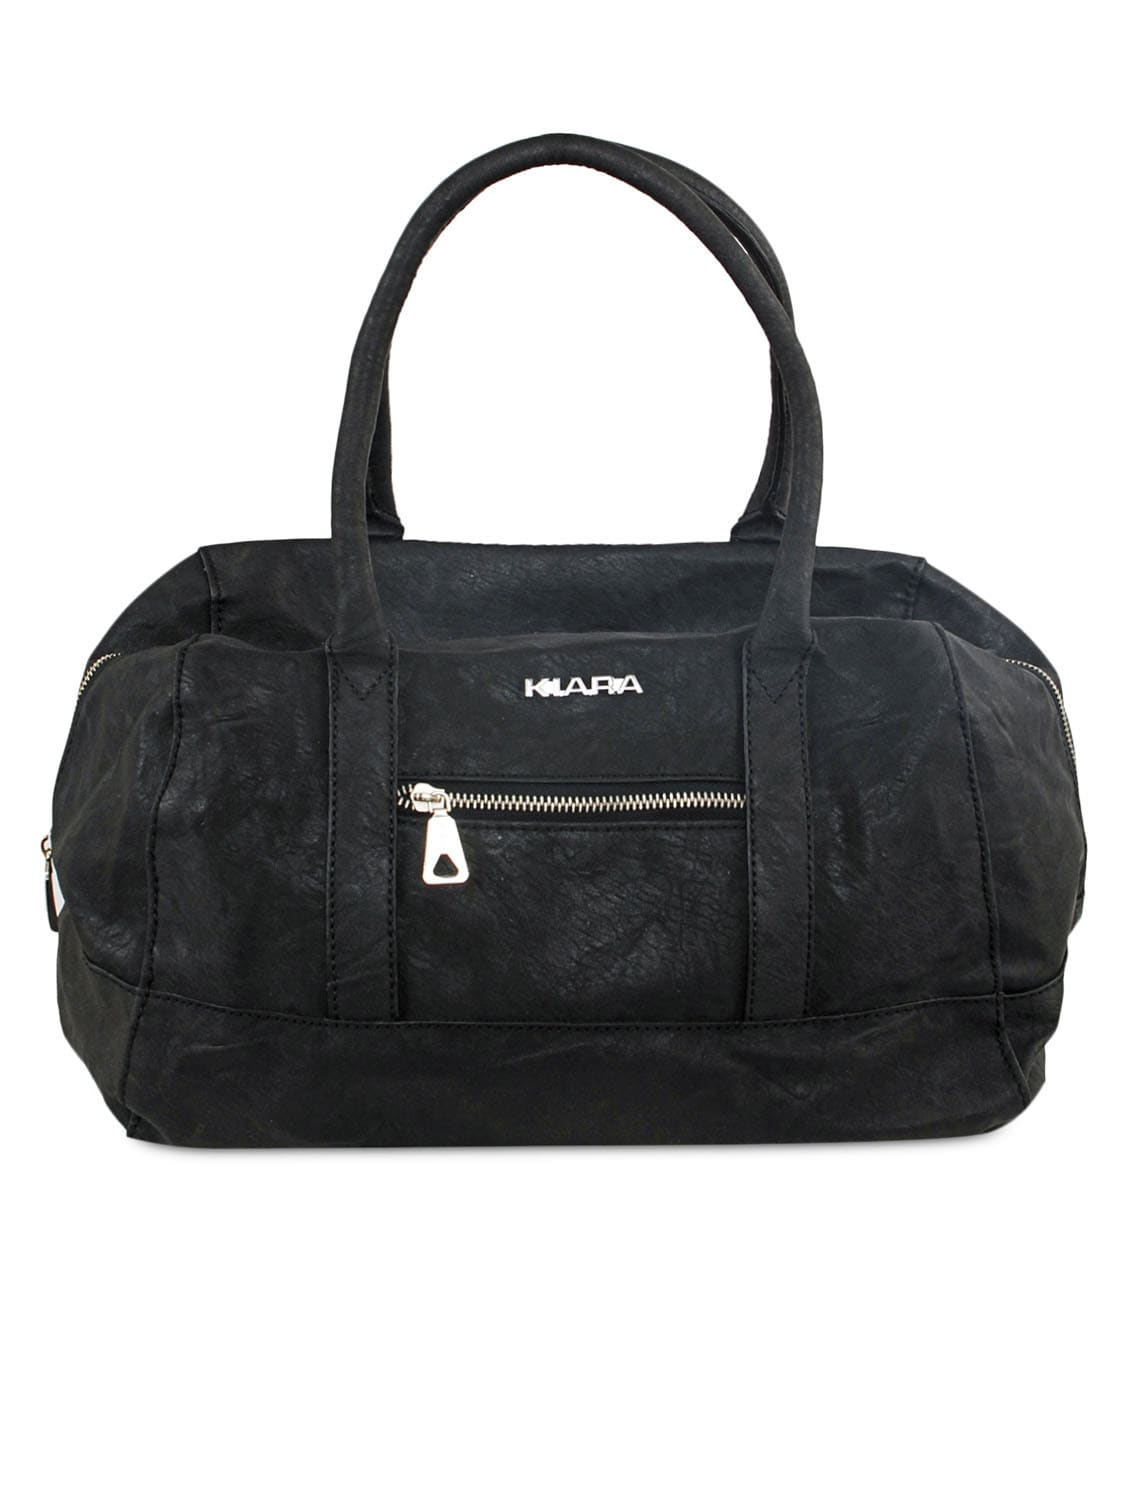 Solid Black Leatherette Tote Handbag - By